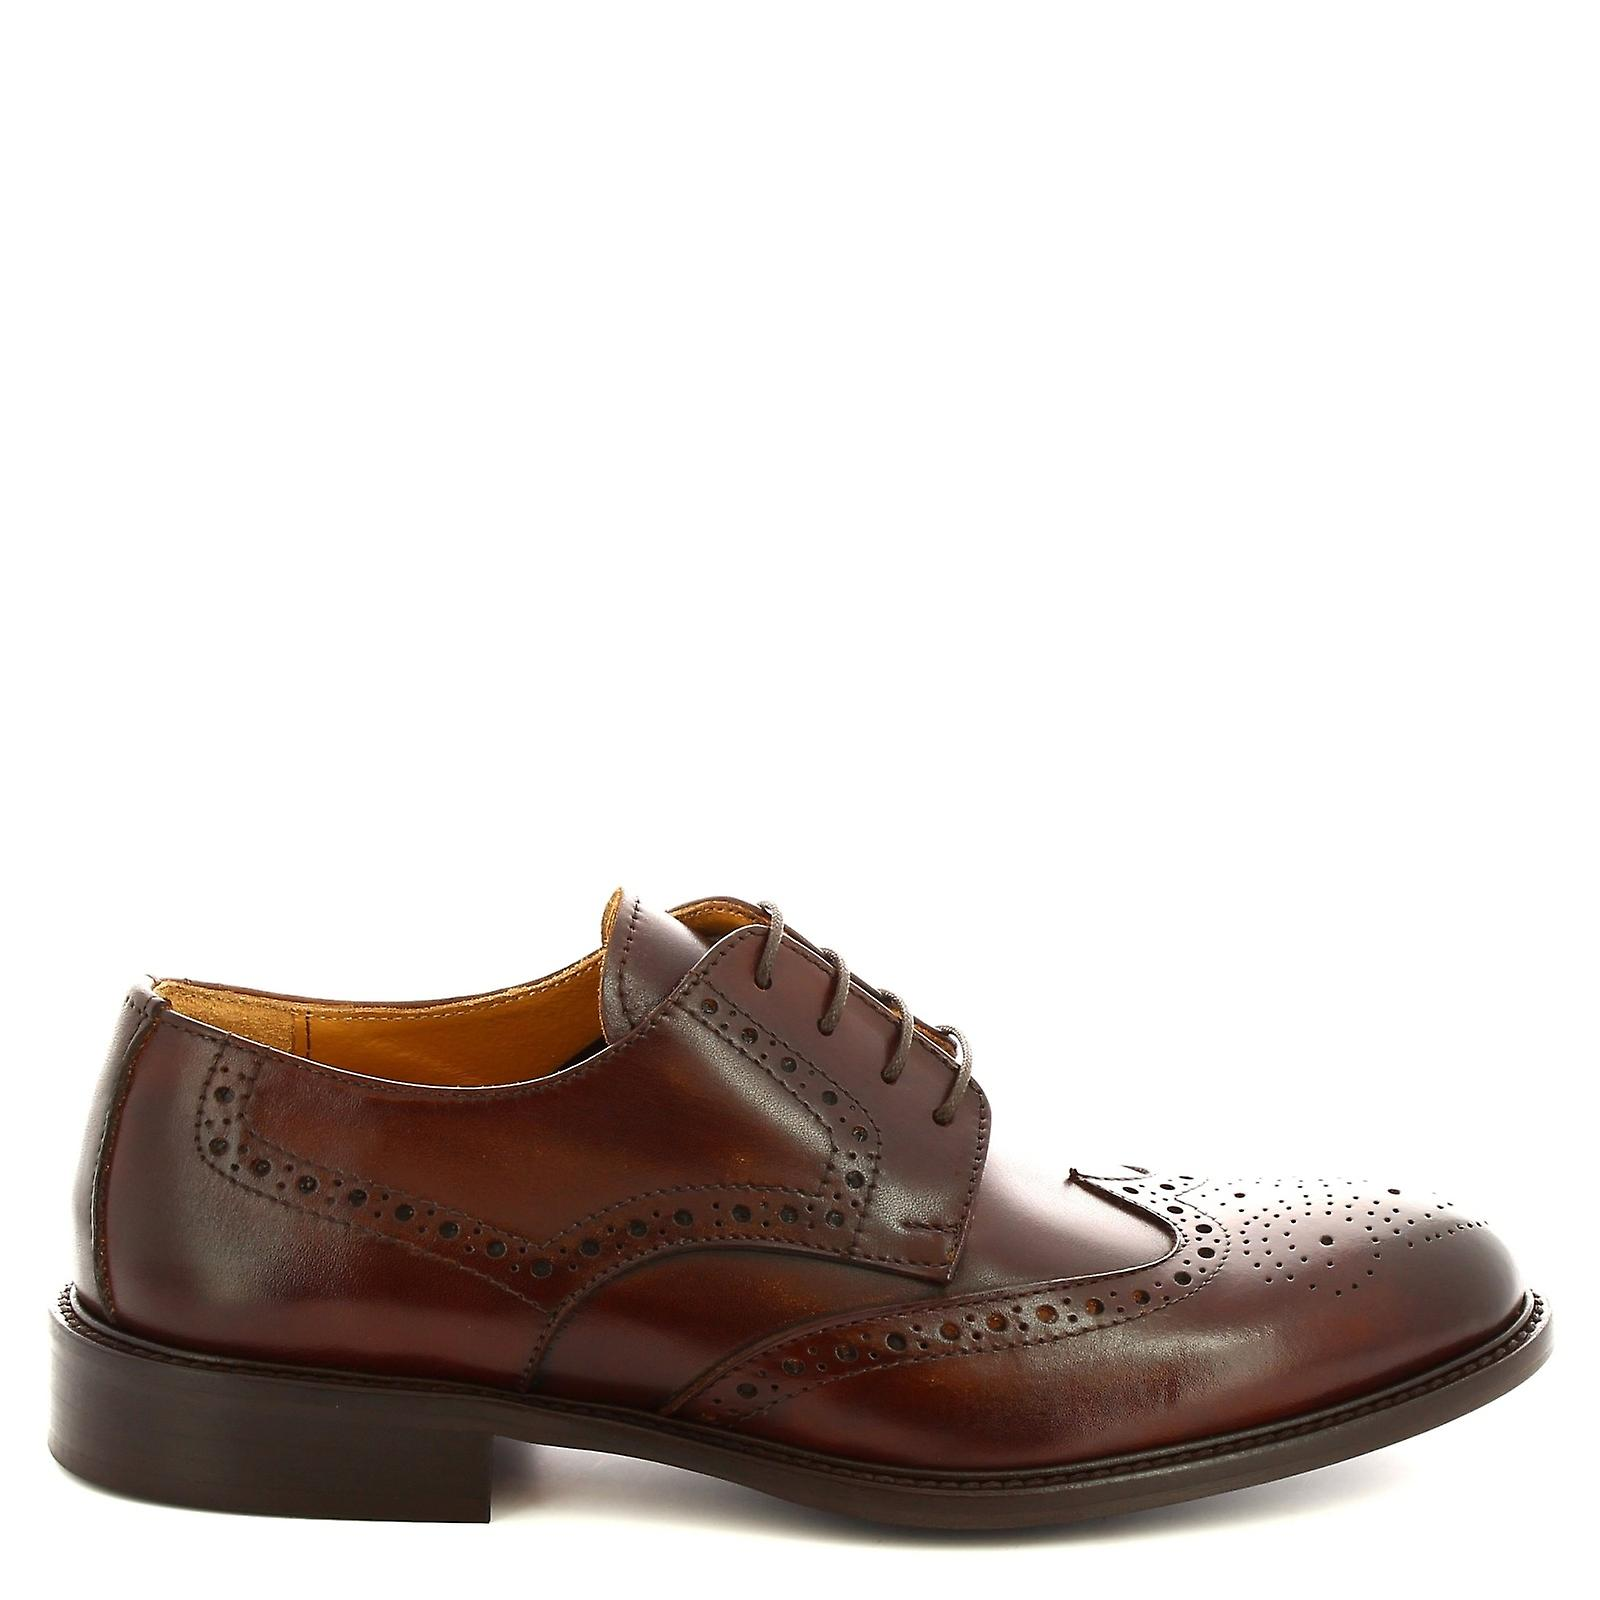 Leonardo Shoes Men's handmade derby brogues shoes in brown calf leather